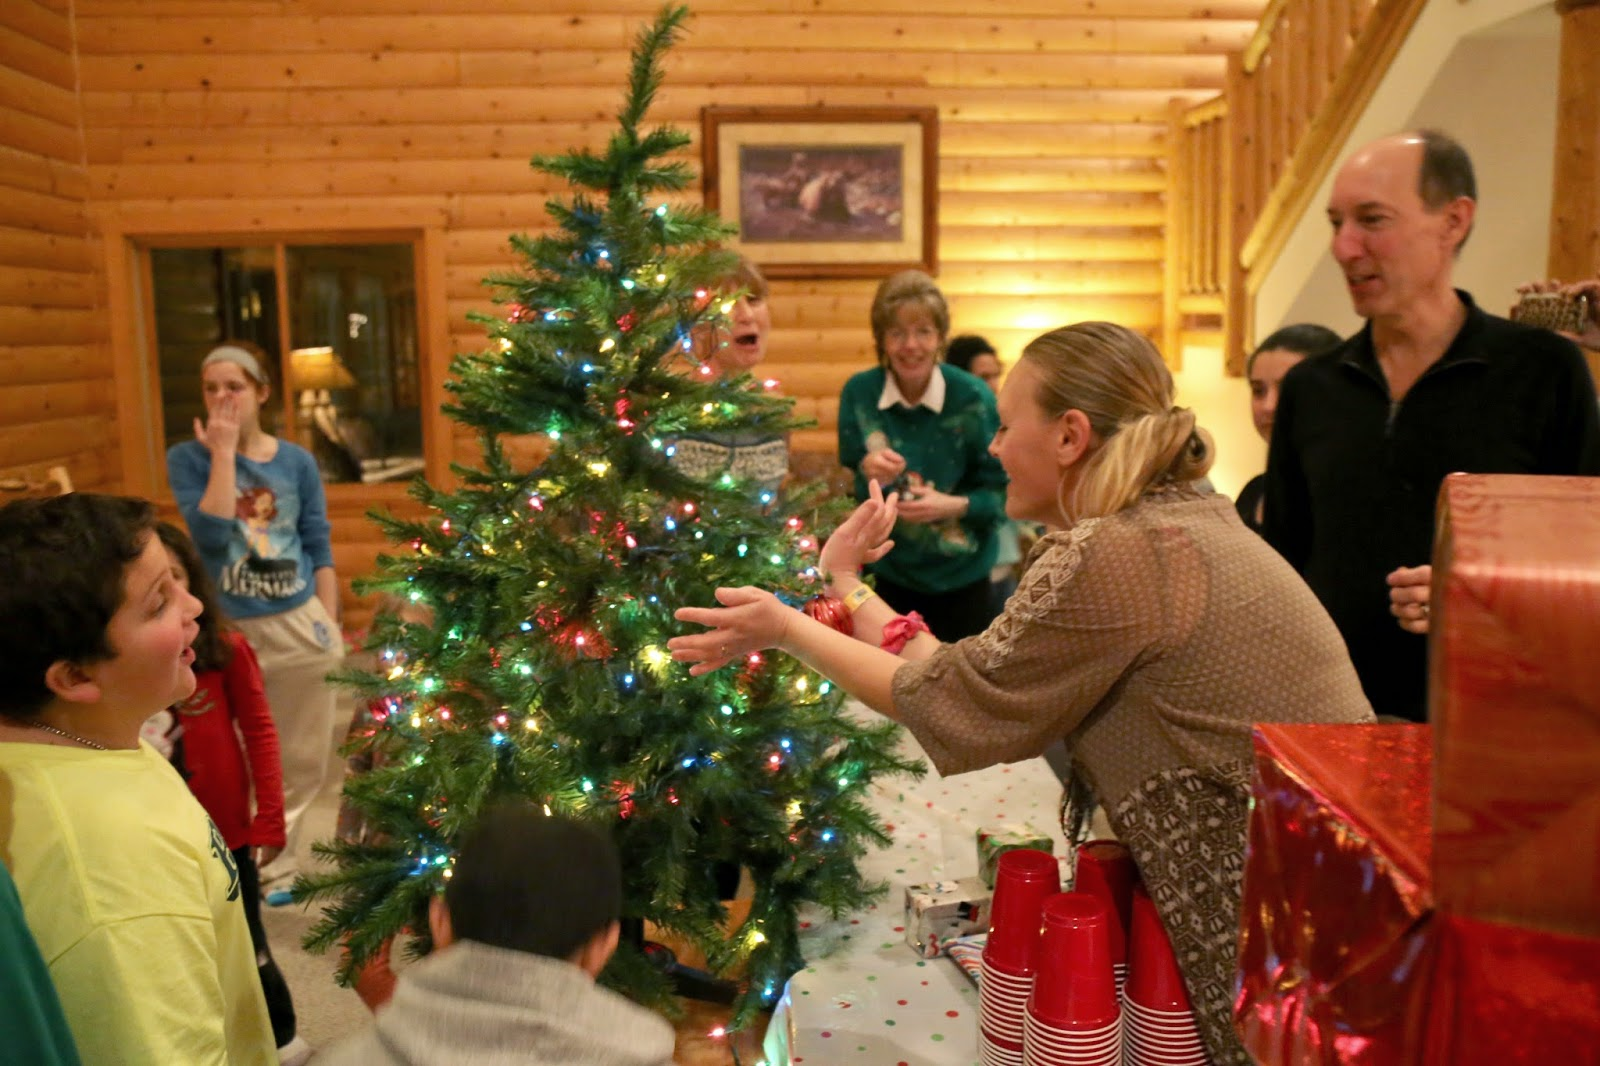 Christmas Party Ideas For Family Part - 31: Easy Party Games To Keep The Extended Family Entertained During The  Holidays - Our Community Now At Virginia